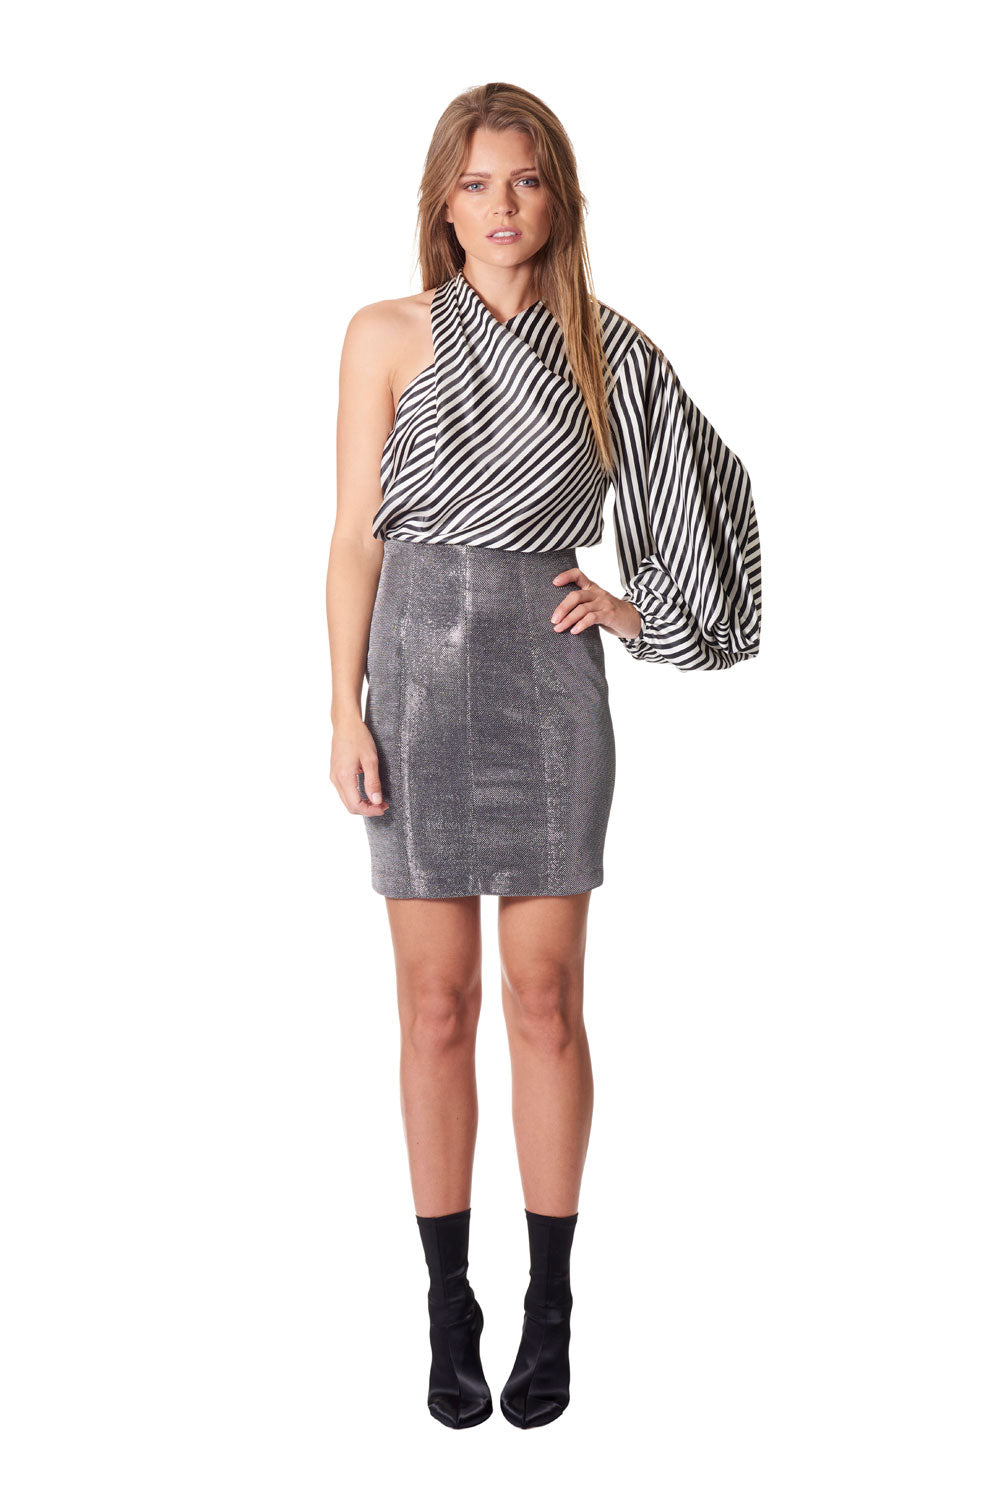 Attitude high waisted mini skirt - Silver